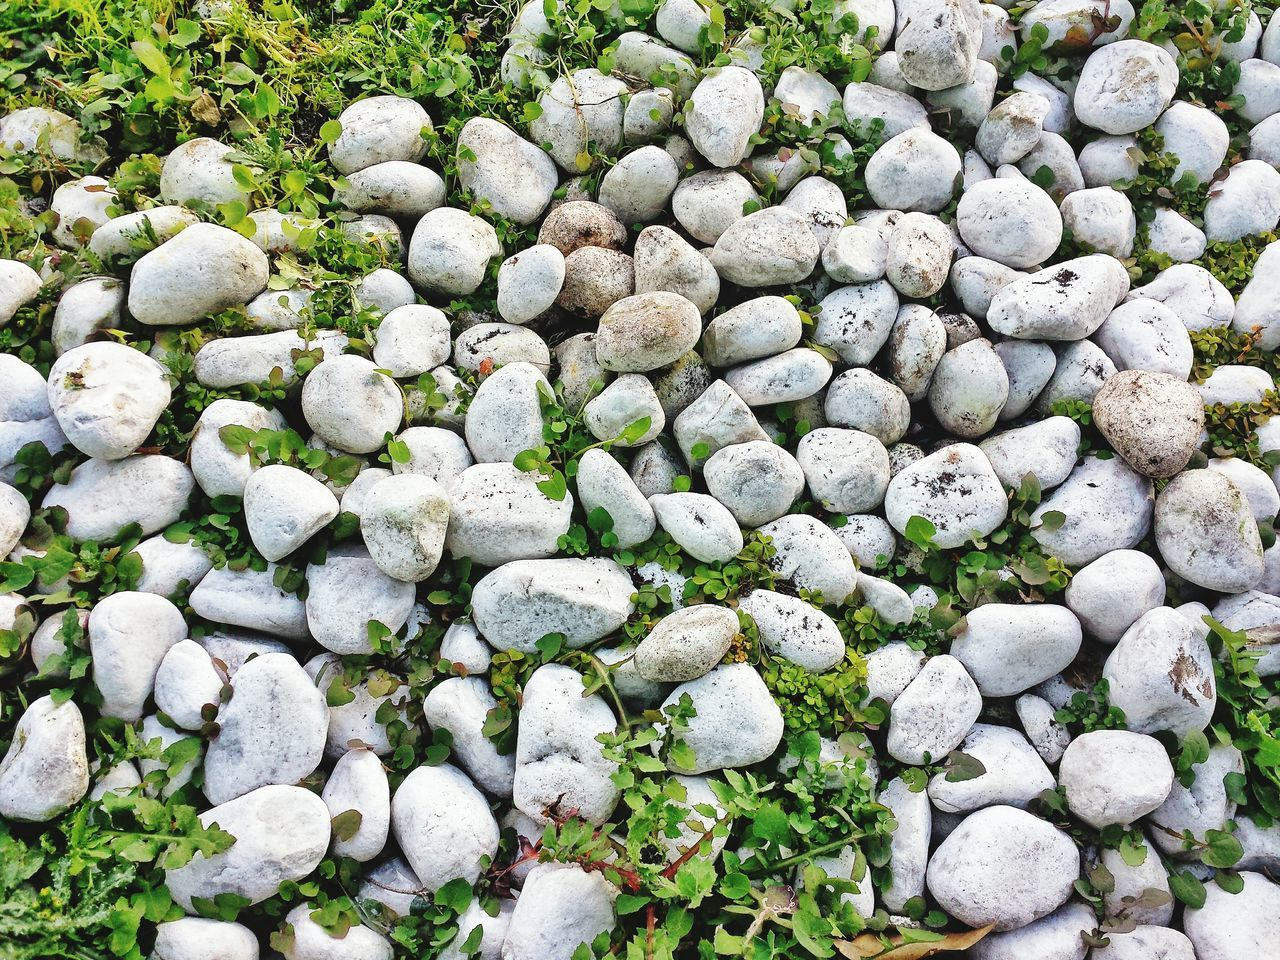 Stone Rocks Pebbles Garden Floral Beauty In Nature Growth Green Color Nature No People Close-up Backgrounds Outdoors Stone Pavement Rocks And Grass Closeup In Nature Closeup Photography No People. Beauty In Nature Diamond Pattern